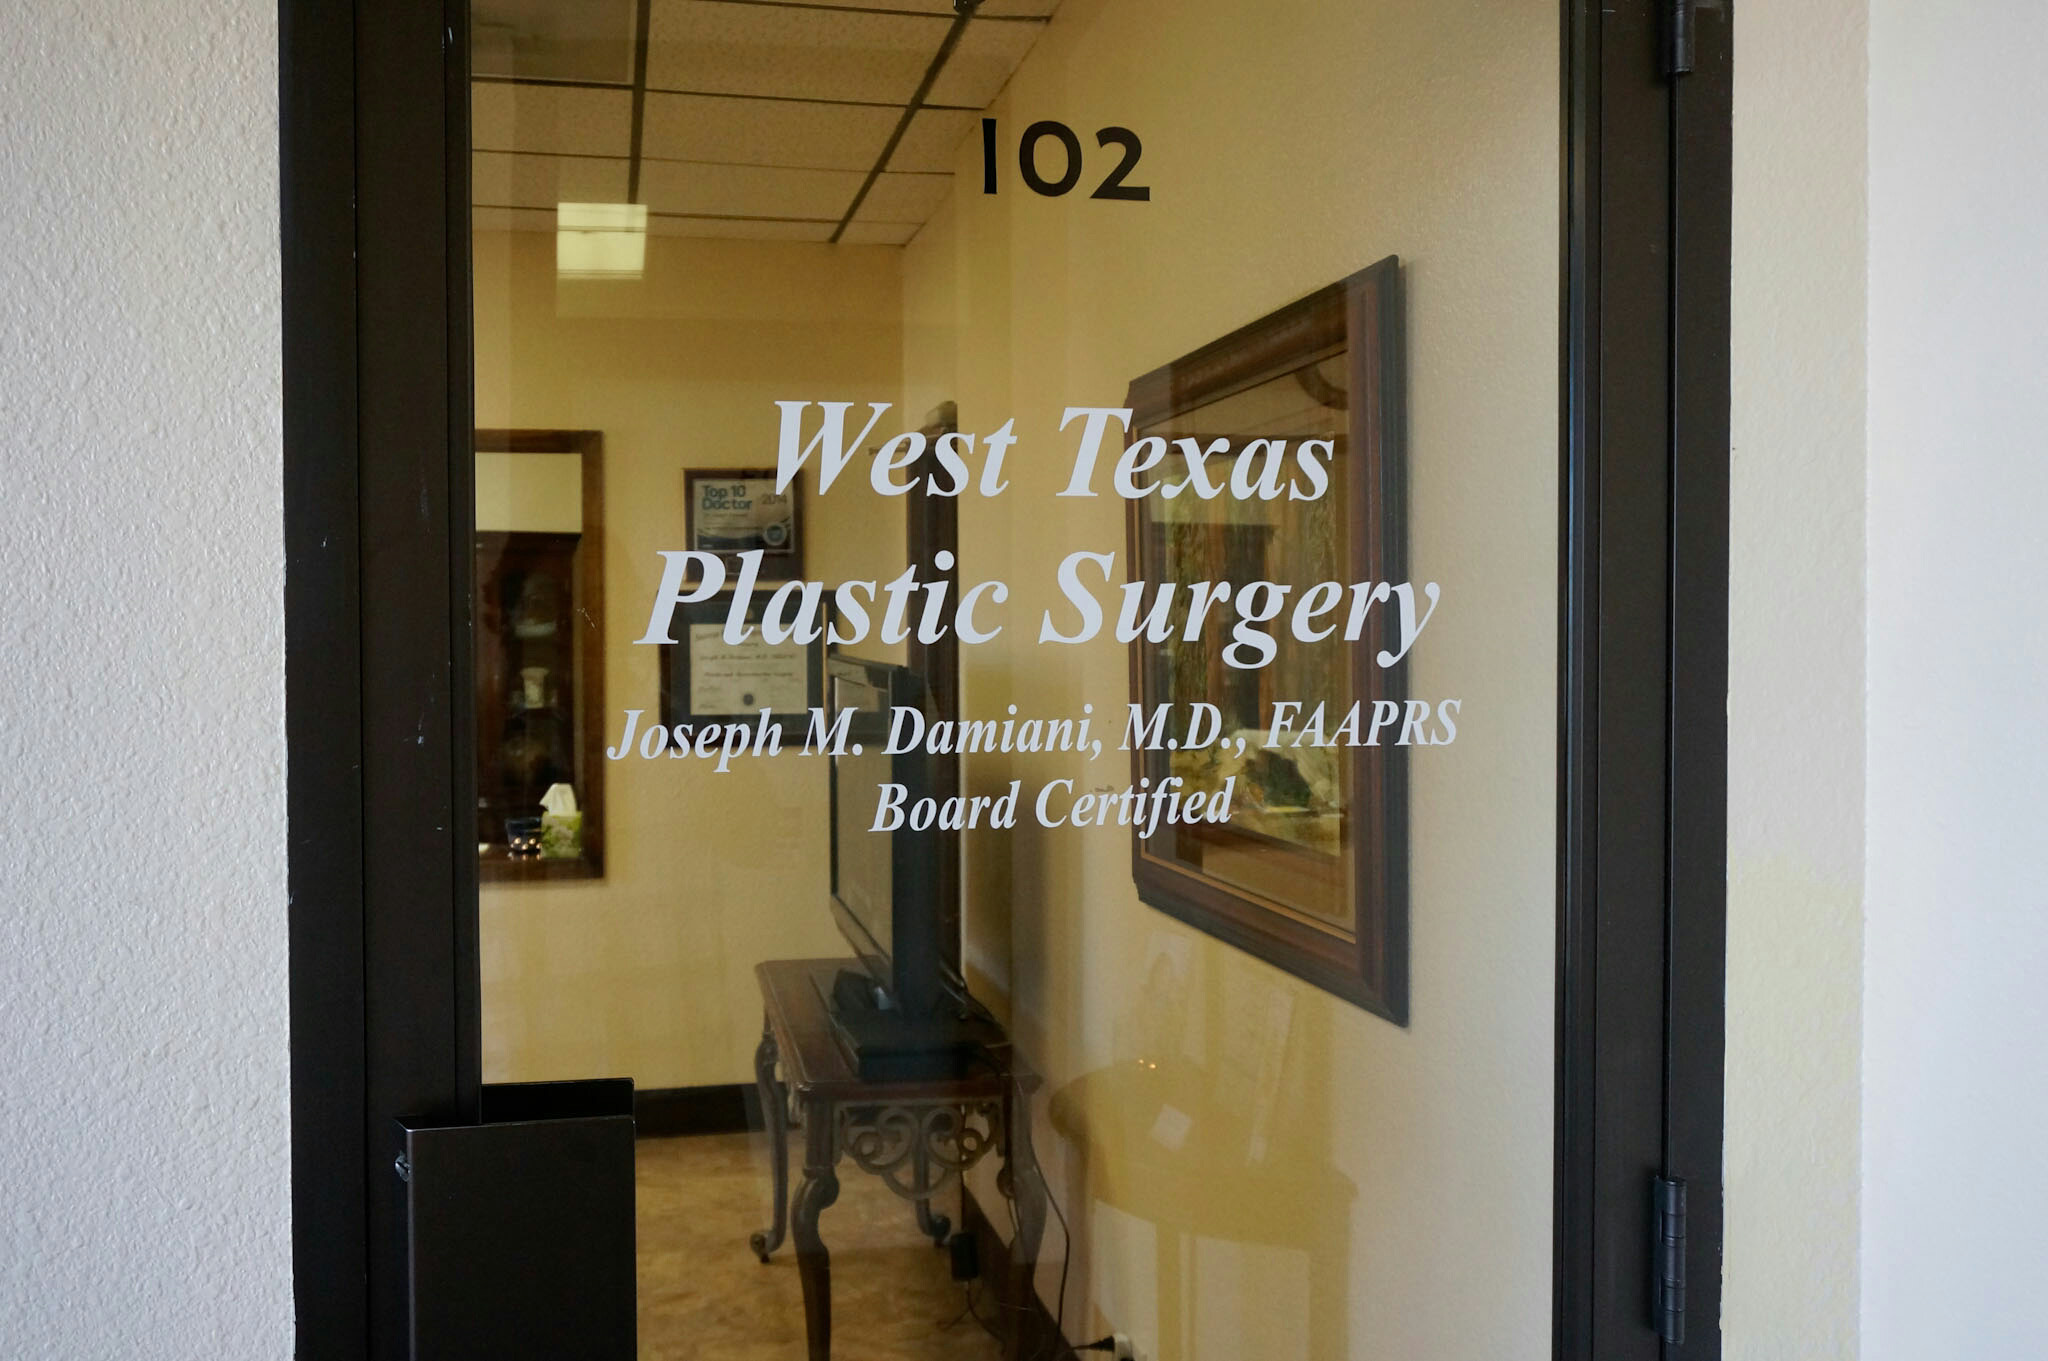 Entrance at West Texas Plastic Surgery, Joseph M. Damiani, M.D., FAAPRS Board Certified Plastic Surgeon